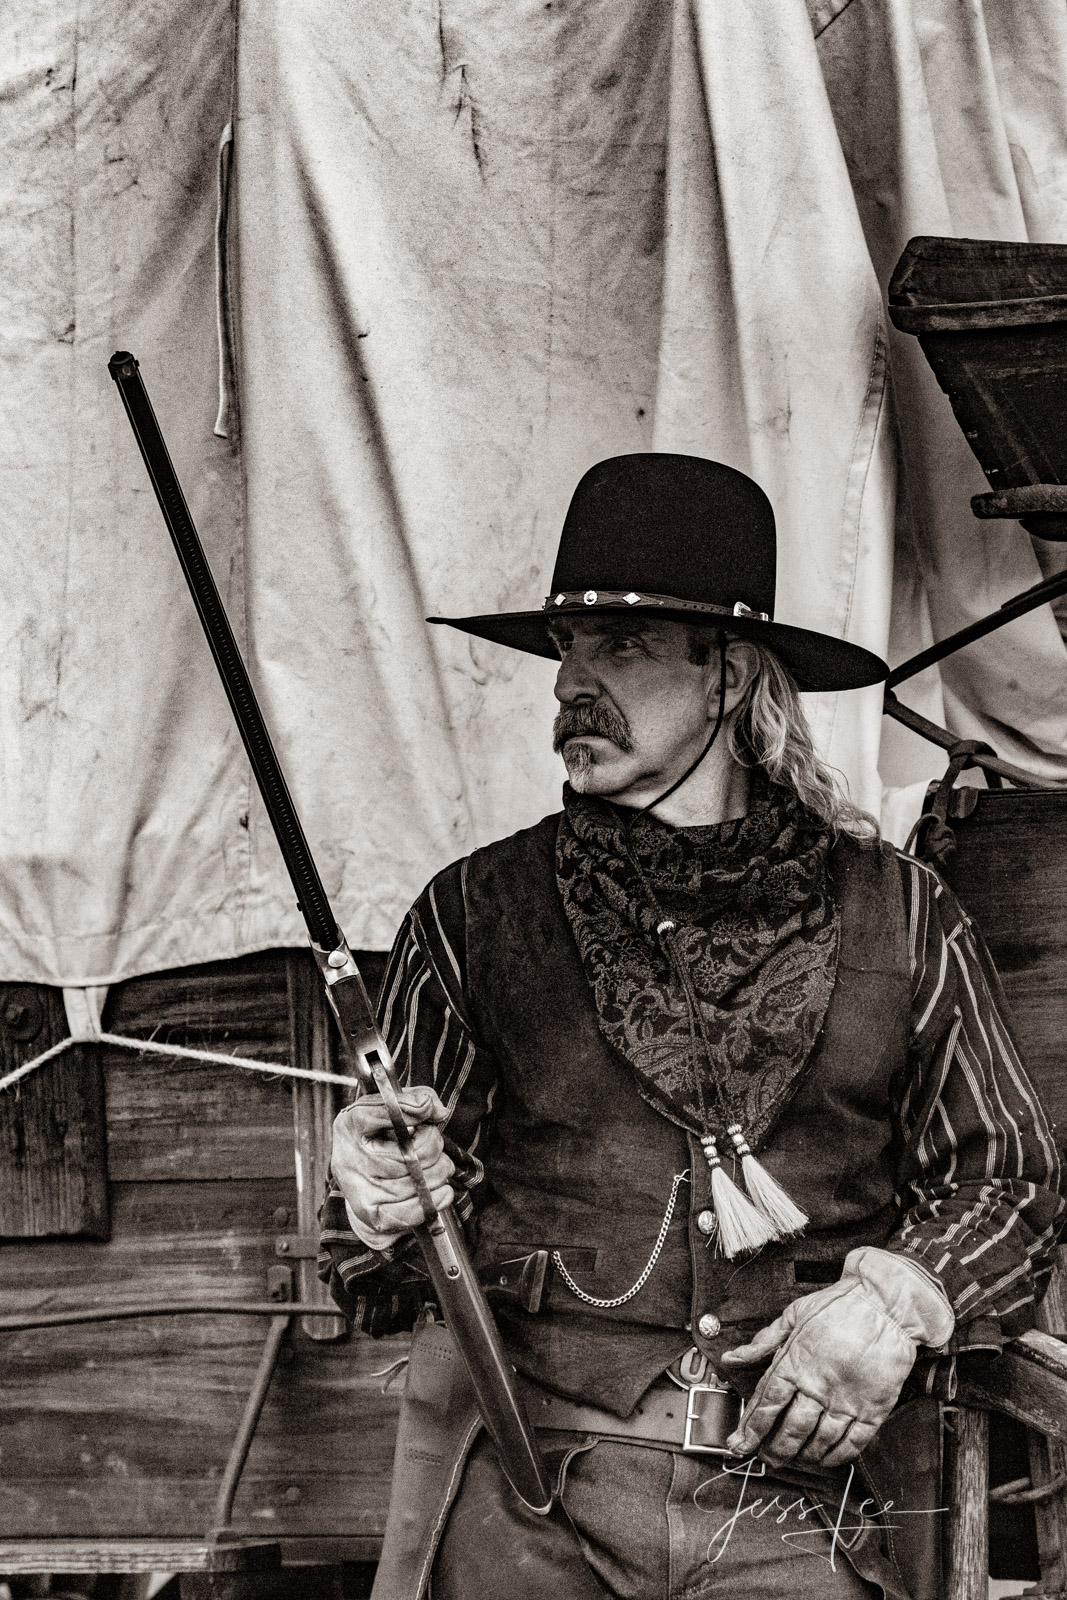 Old Time Cowboy Black and White Sepia Print. Plainsman with Henry Rifle at wagon.